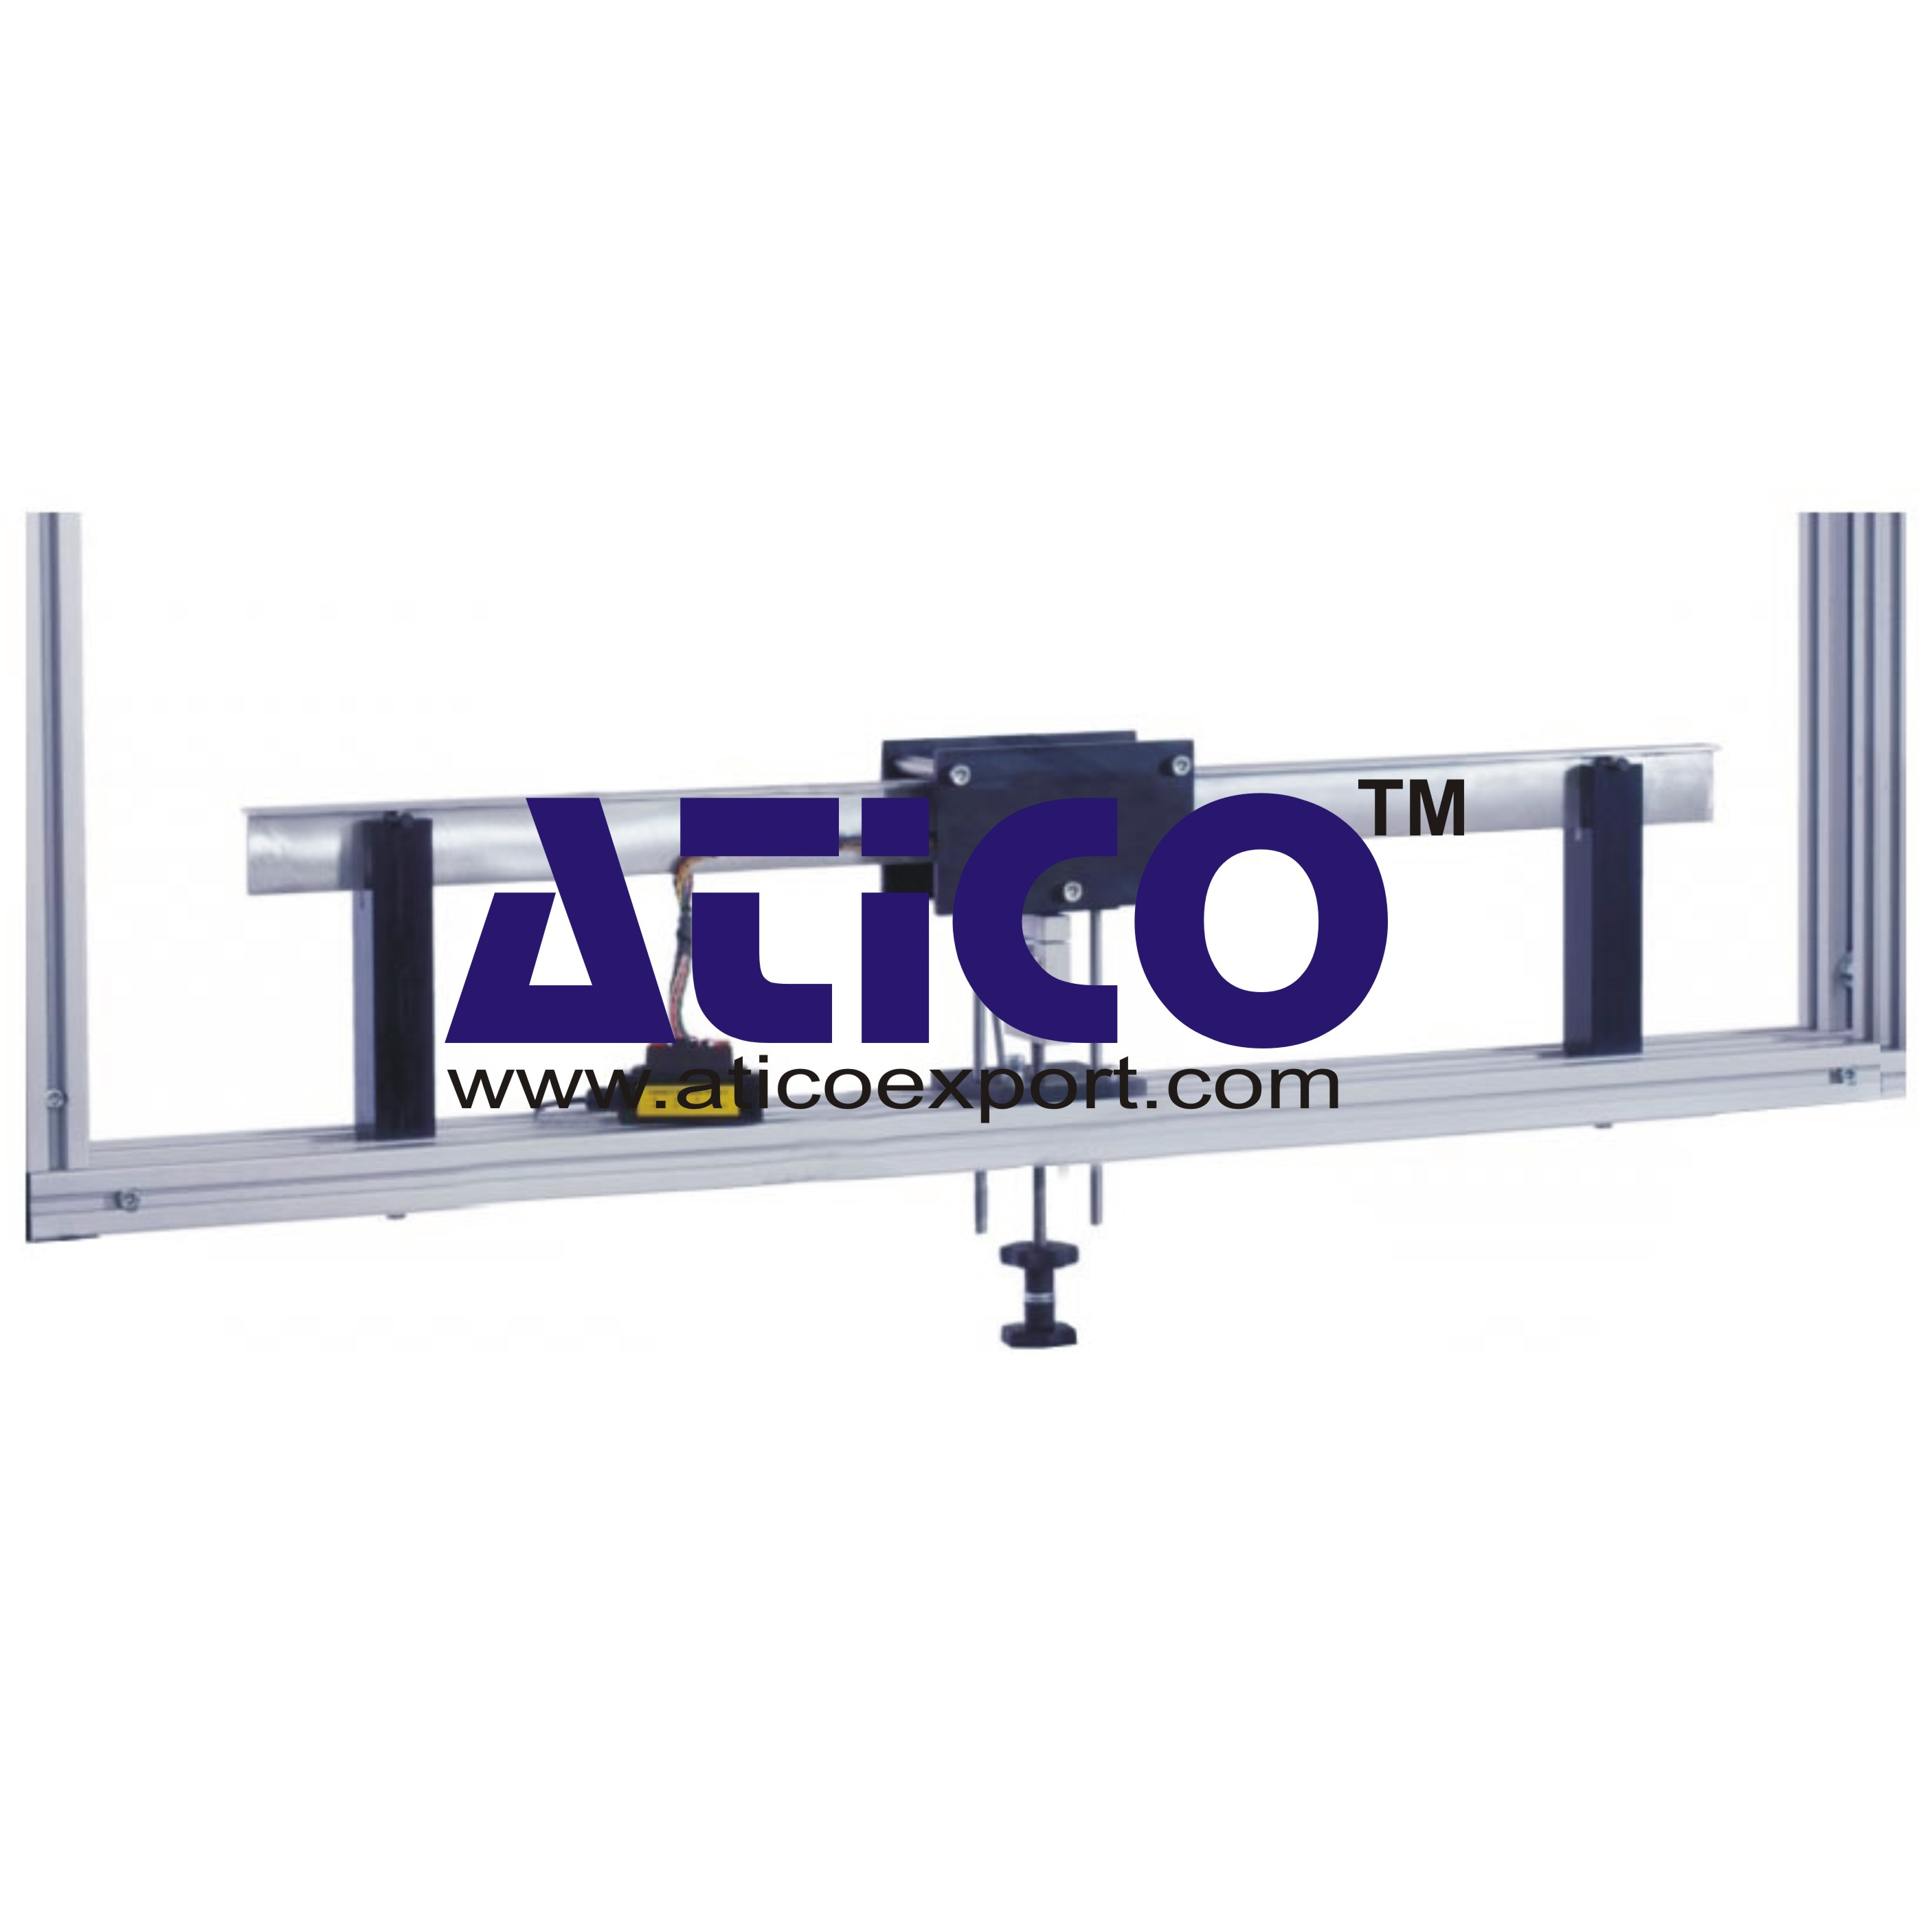 Bending Stress in Beam Manufacturer Supplier India - Atico